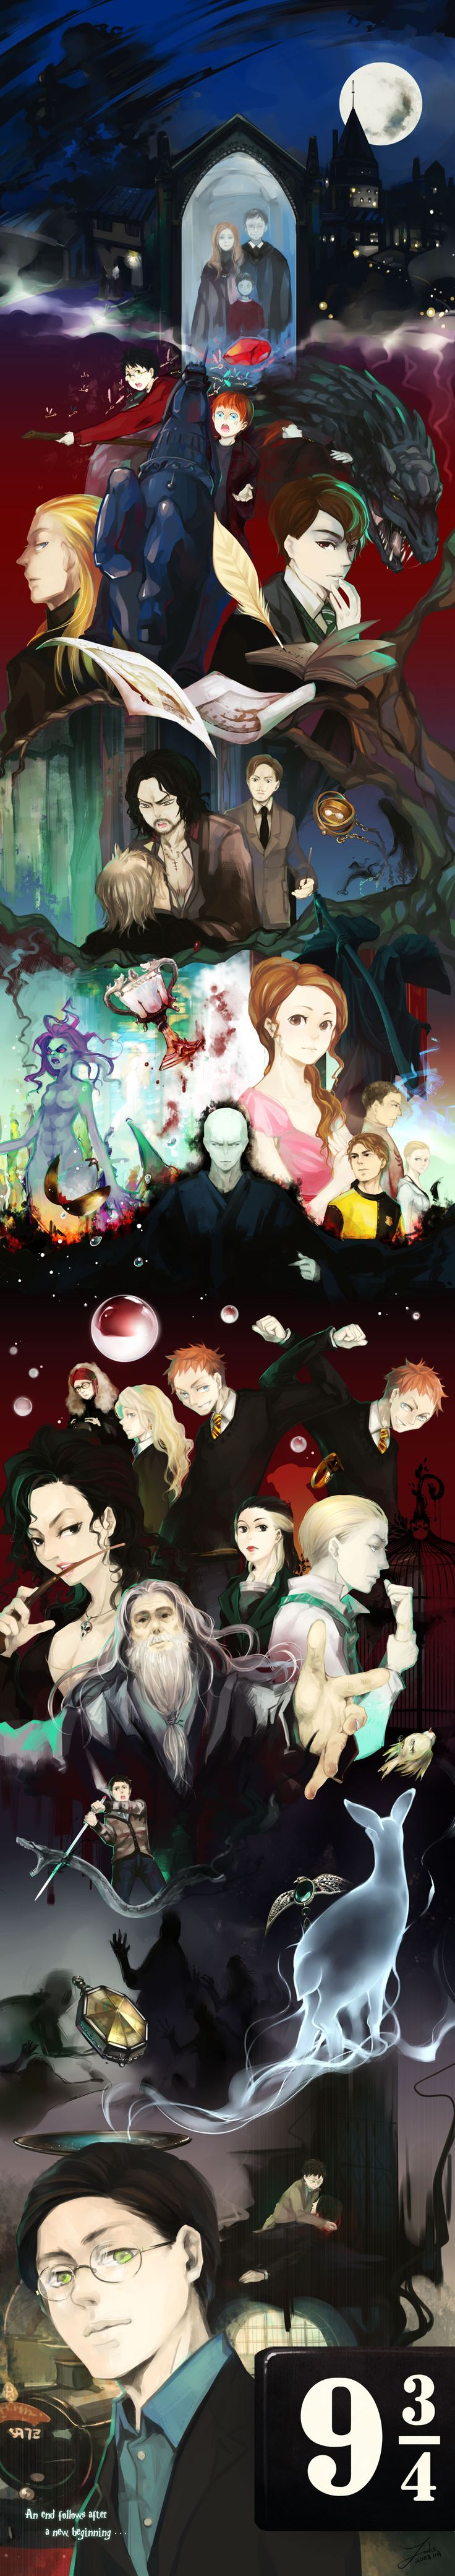 Tags: Fanart, Harry Potter, Pixiv, Hermione Granger, Luna Lovegood, Harry Potter (character), Draco Malfoy, Tom Marvolo Riddle, Ron Weasley, Ginny Weasley, Severus Snape, George Weasley, Fred Weasley, Neville Longbottom, Sirius Black, Remus Lupin, James Potter, Lily Evans, Peter Pettigrew, Cedric Diggory, Marauders, Albus Dumbledore, Narcissa Malfoy, Bellatrix Lestrange, Weasley Twins, Weasley Family, Fleur Delacour, Viktor Krum, Sybill Trelawney, Jackt